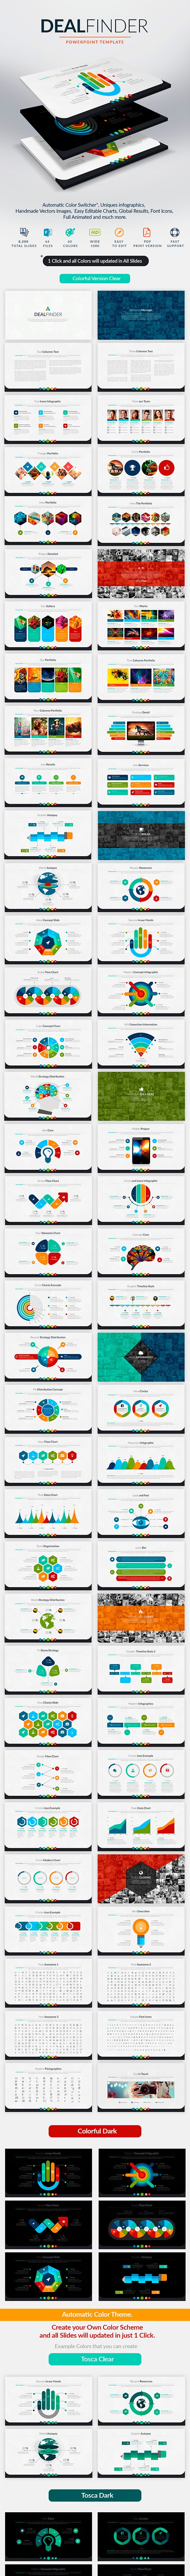 Deal Finder | Powerpoint Template - Business PowerPoint Templates